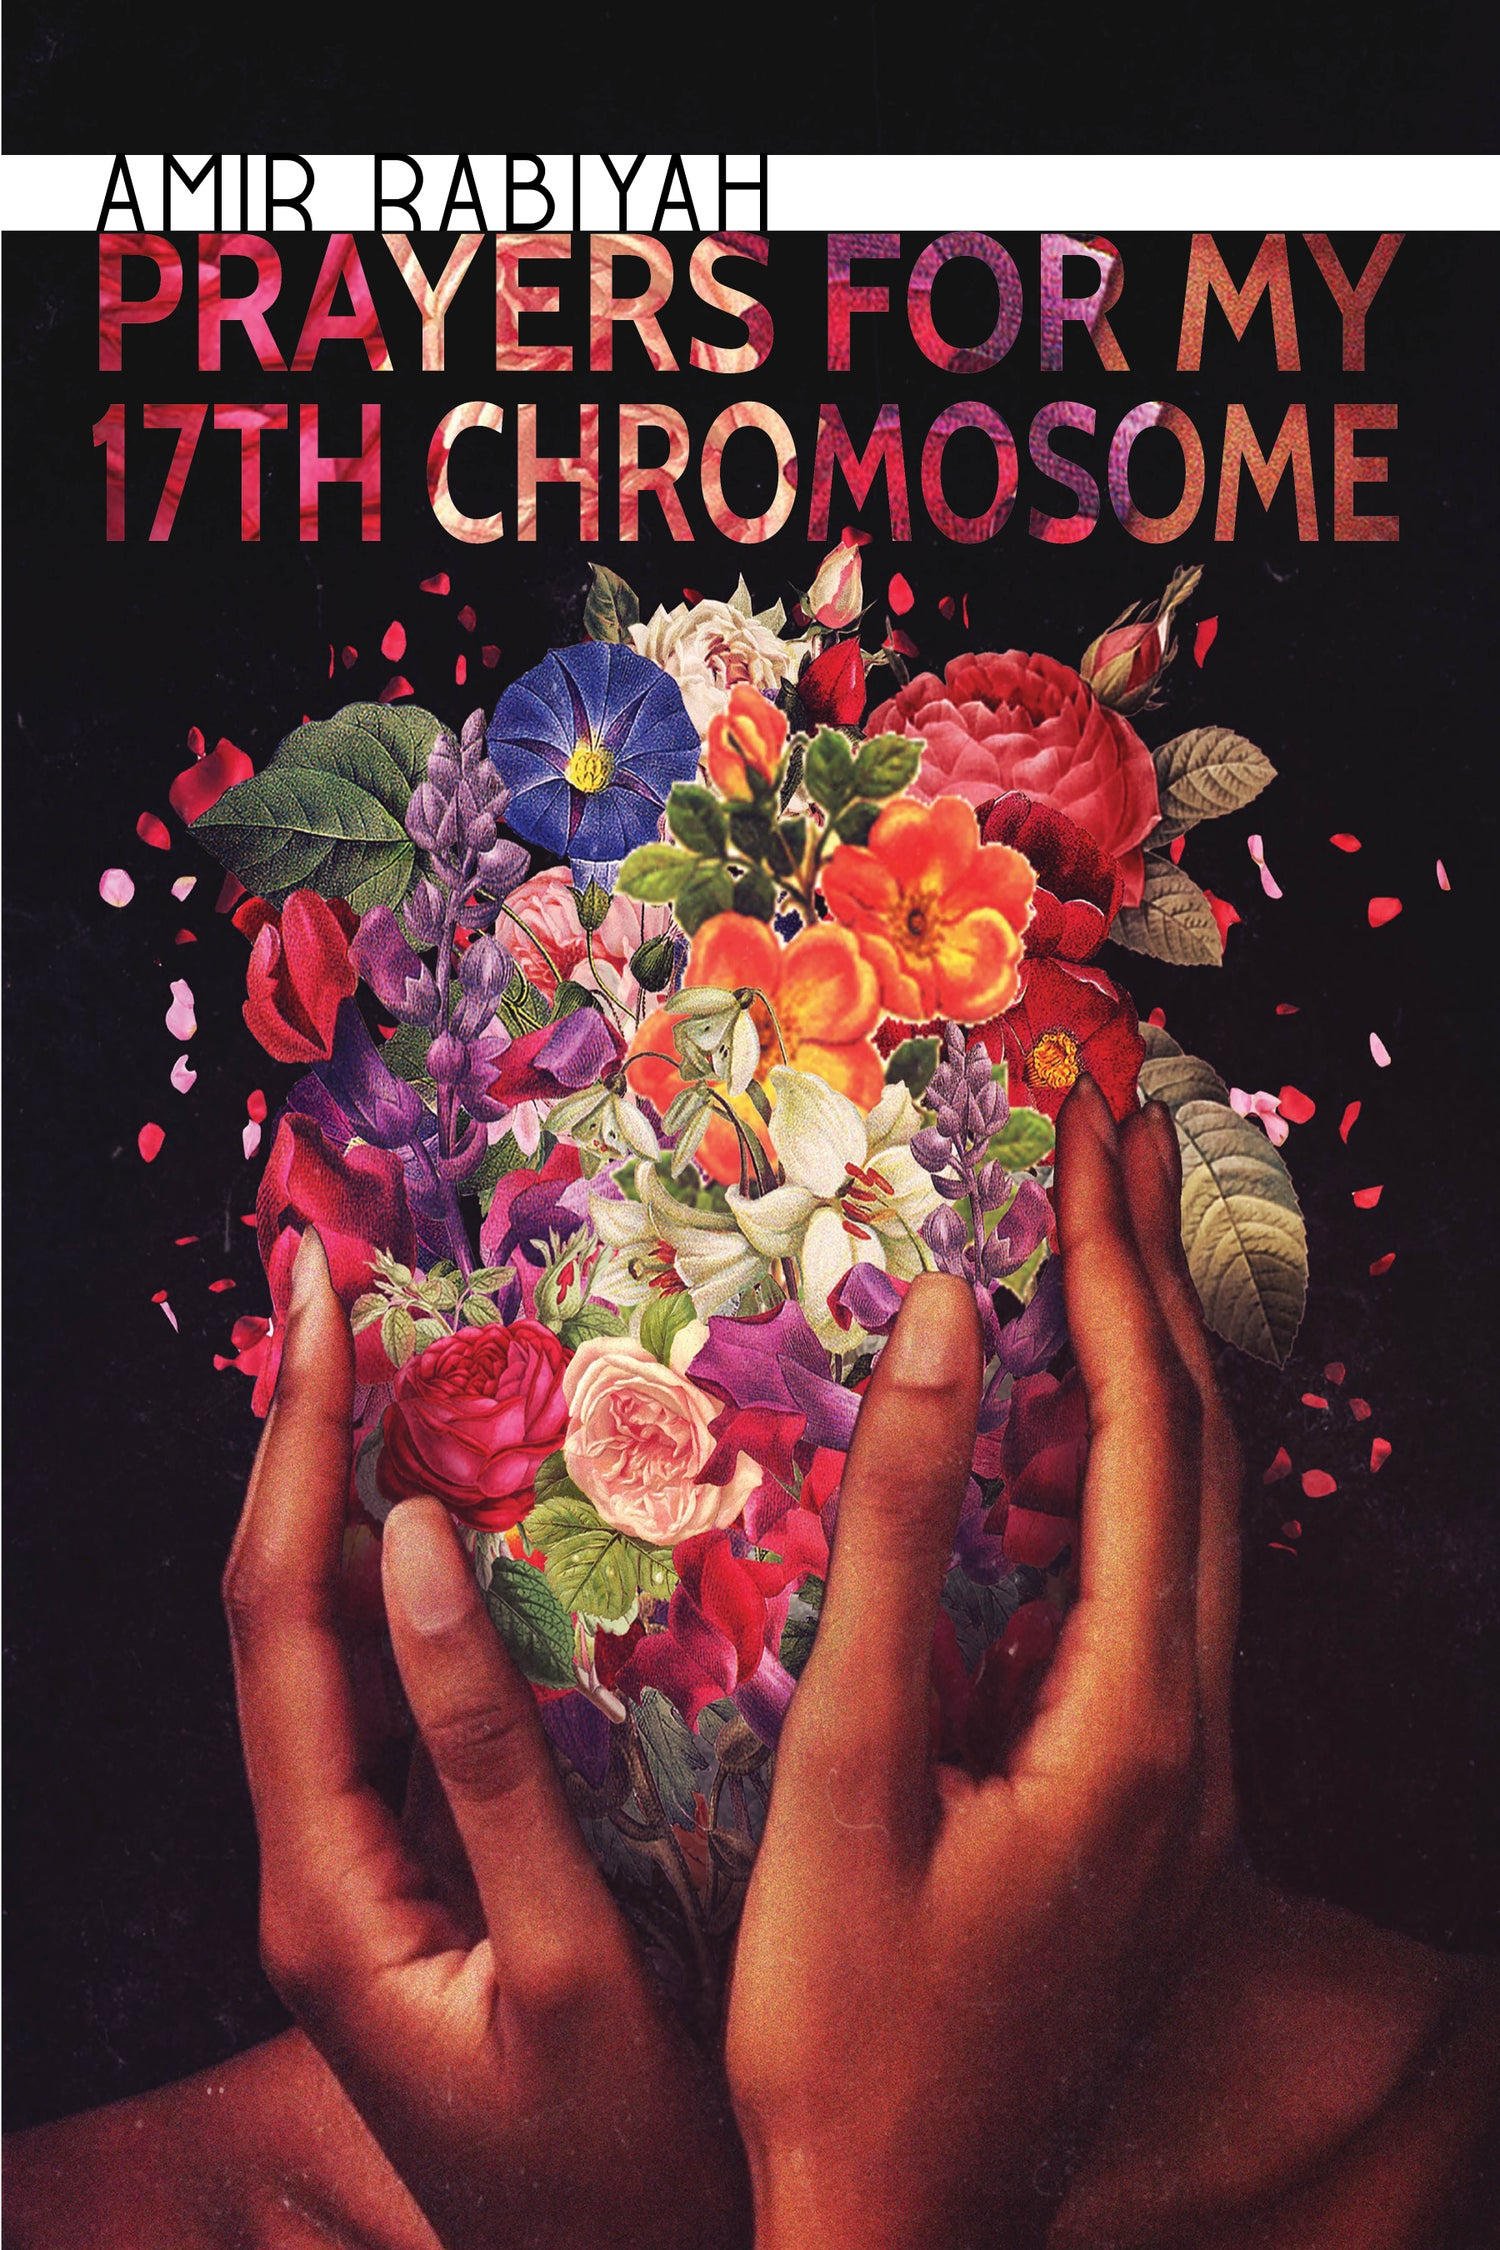 Image of Prayers for My 17th Chromosome by Amir Rabiyah (Publishing Triangle Finalist)